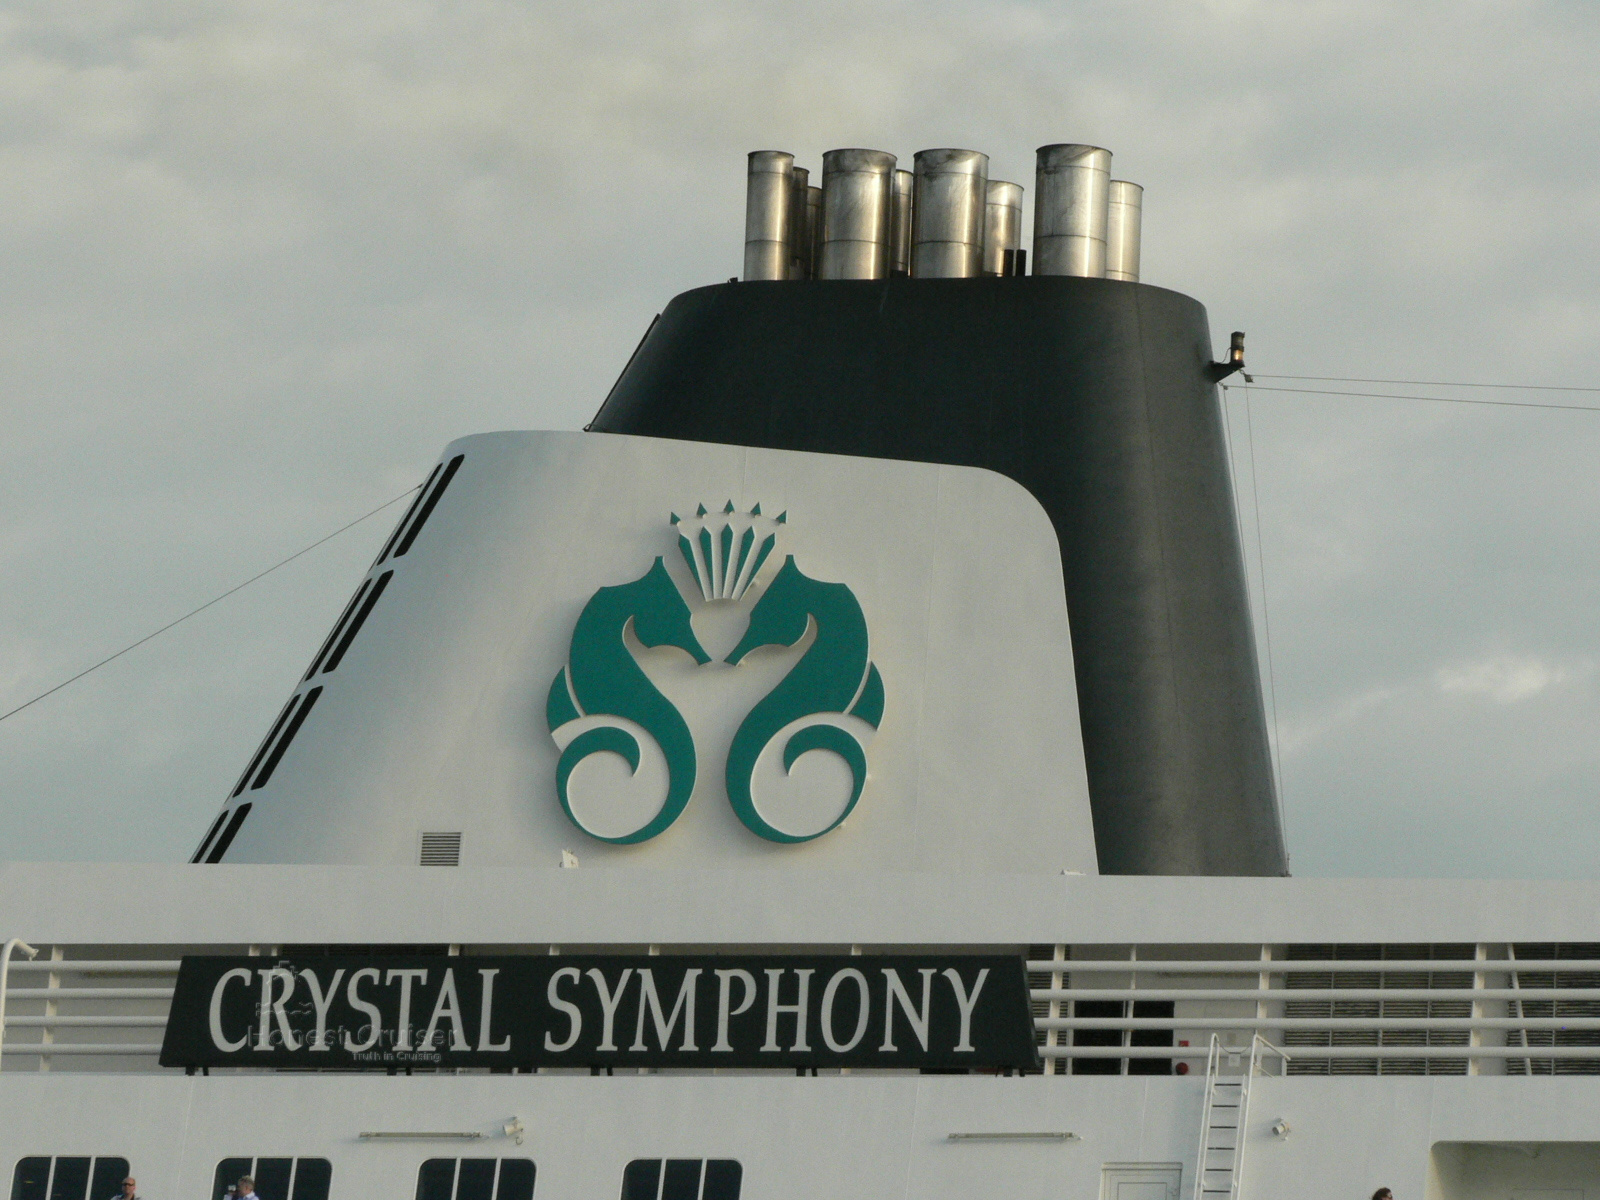 Crystal Symphony's funnel is of similar style to Amadea and a visible evolution.